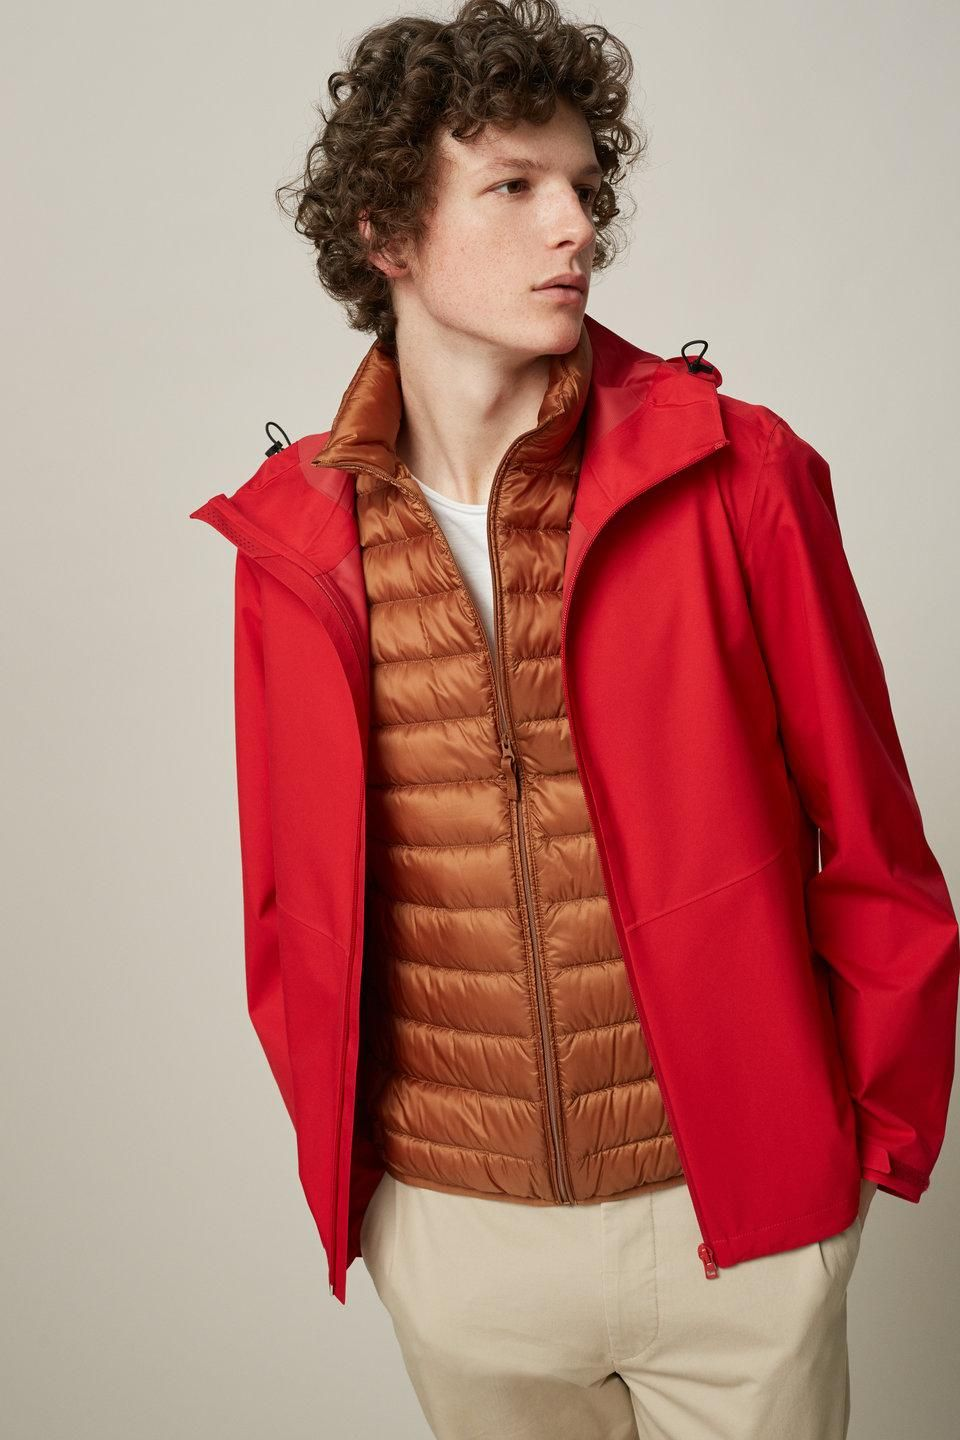 Fight Off The Winter Blues With Our Ultra Light Down Collection S New Spring Colors Down Jacket Fashion Vest Jacket [ 1440 x 960 Pixel ]